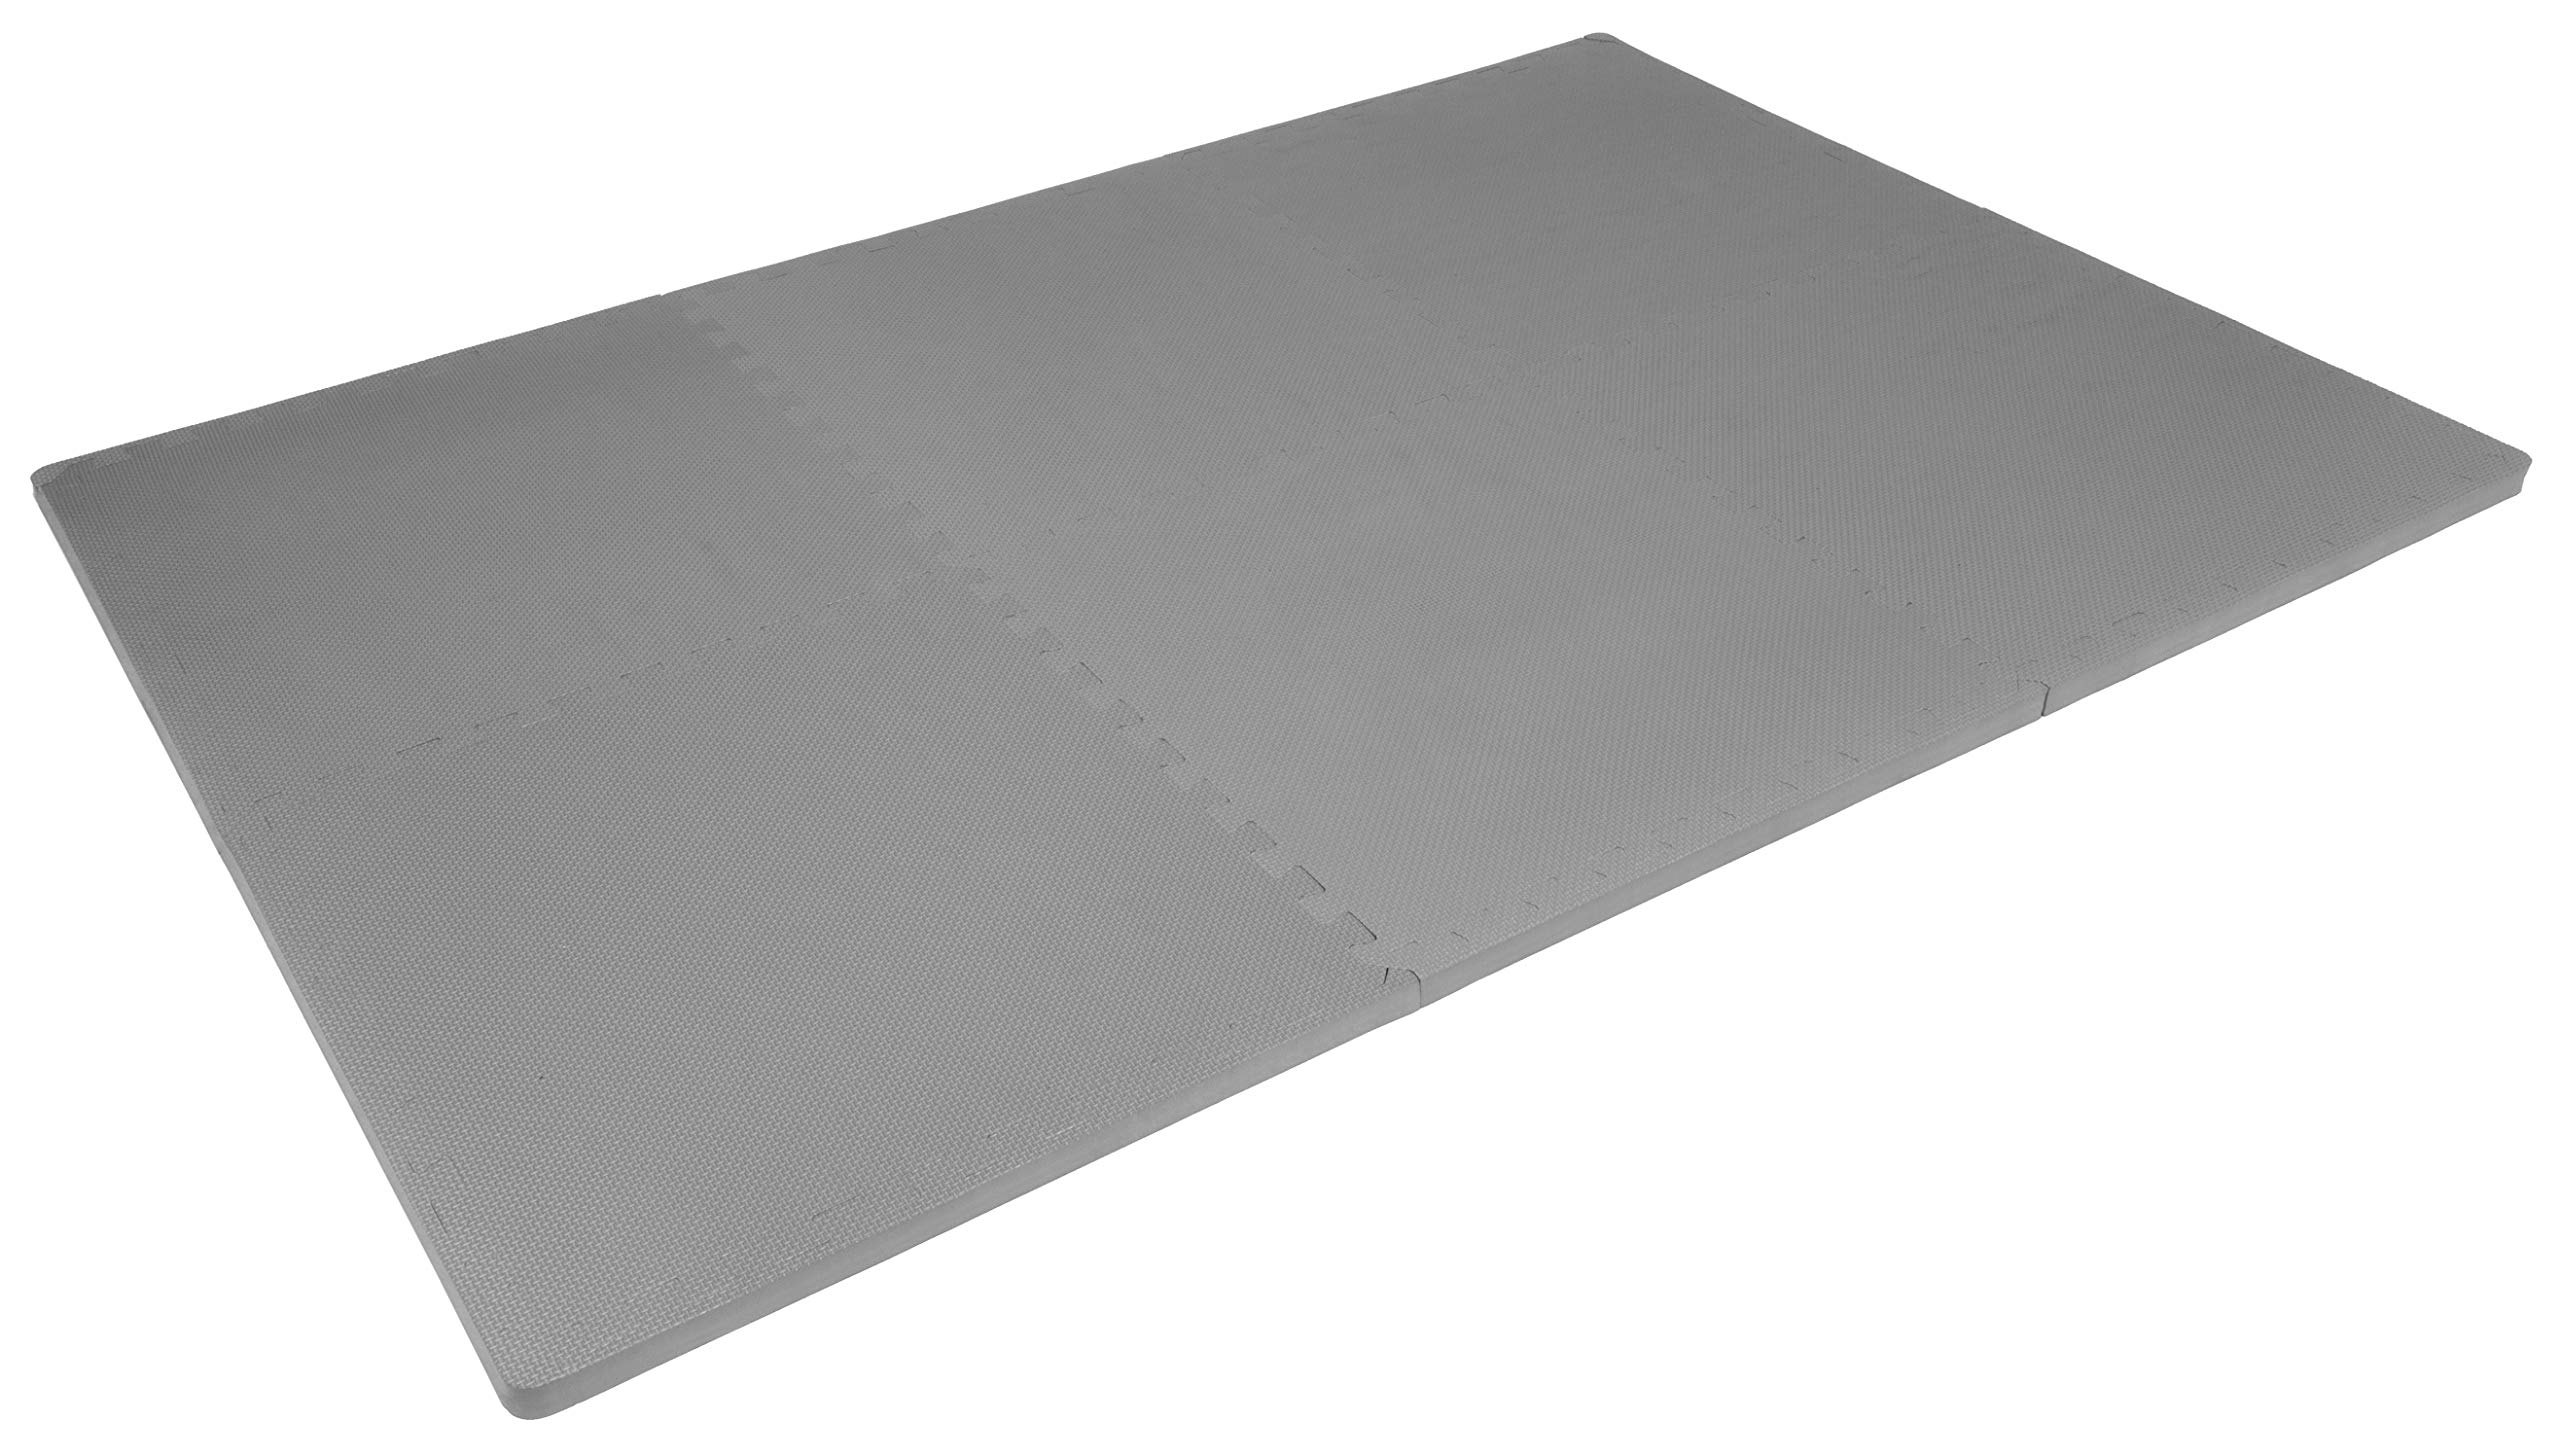 """Prosource Fit Extra Thick Puzzle Exercise Mat 1"""", EVA Foam Interlocking Tiles for Protective, Cushioned Workout Flooring for Home and Gym Equipment, Grey by ProsourceFit (Image #4)"""